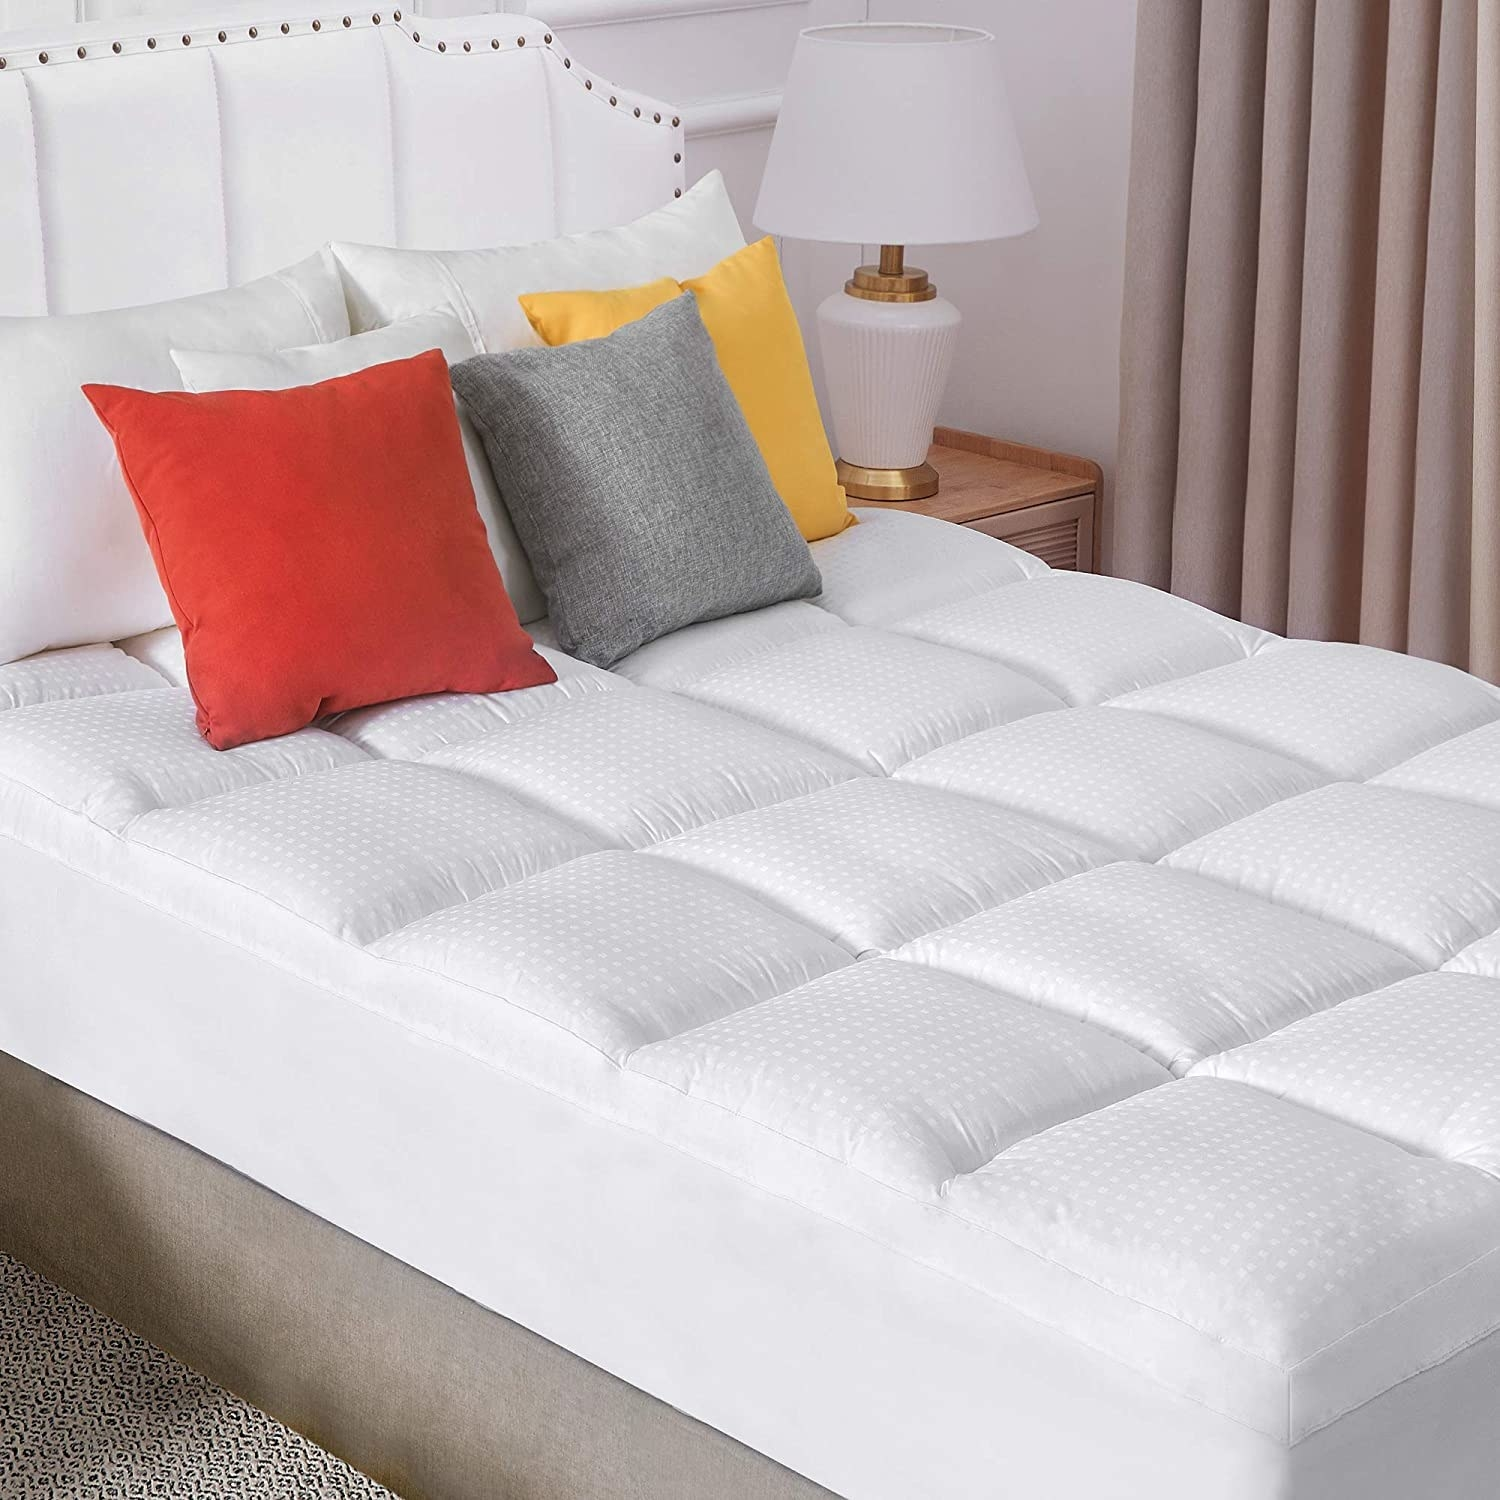 The white quilted topper